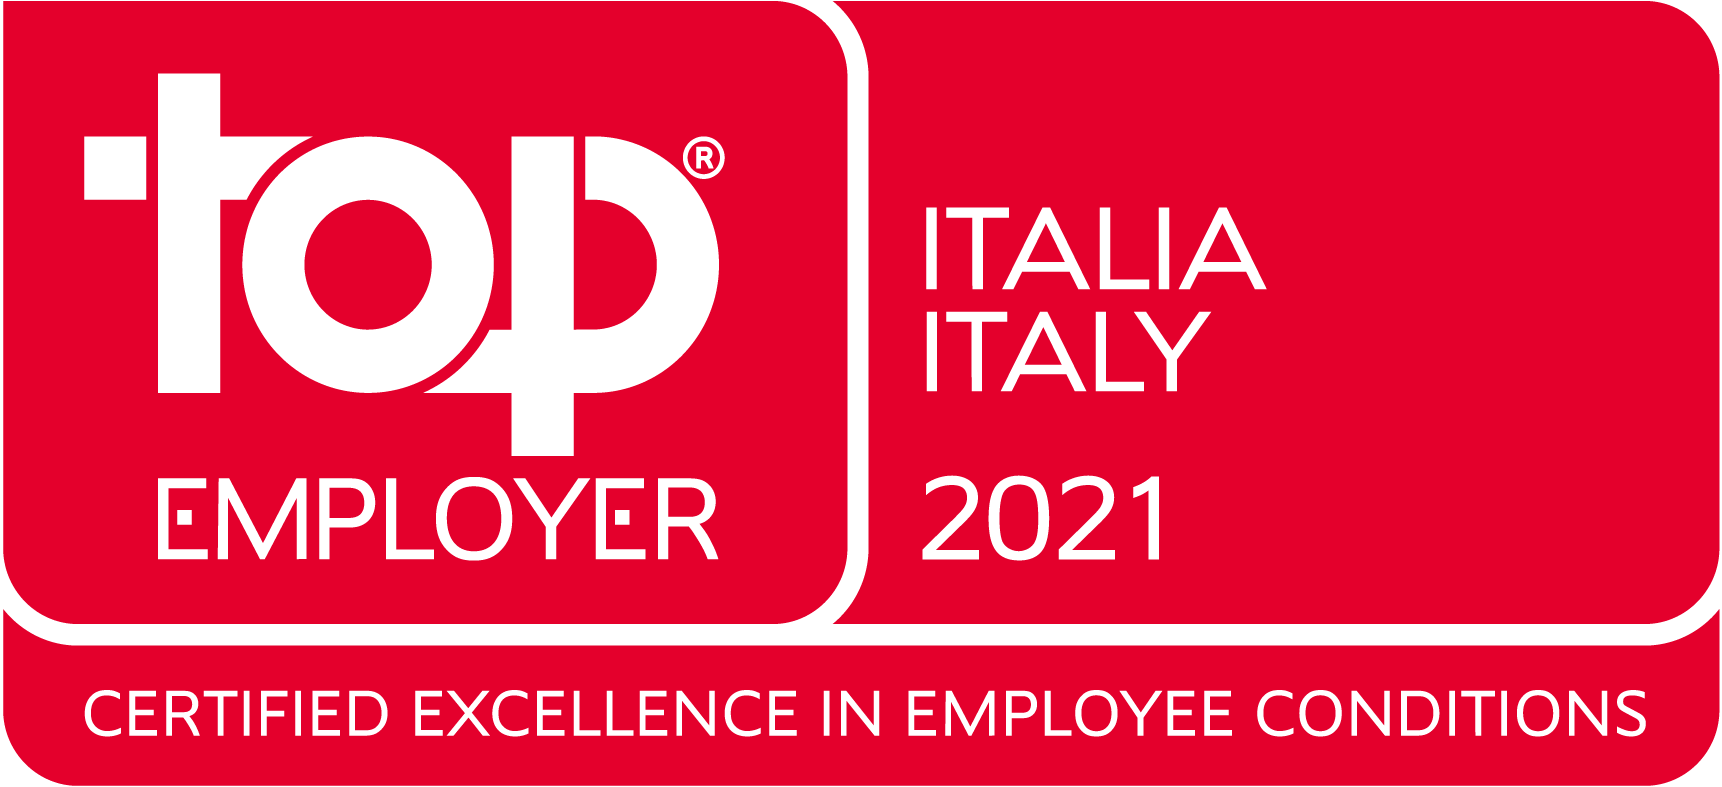 Logo Top Employer Italy 2021